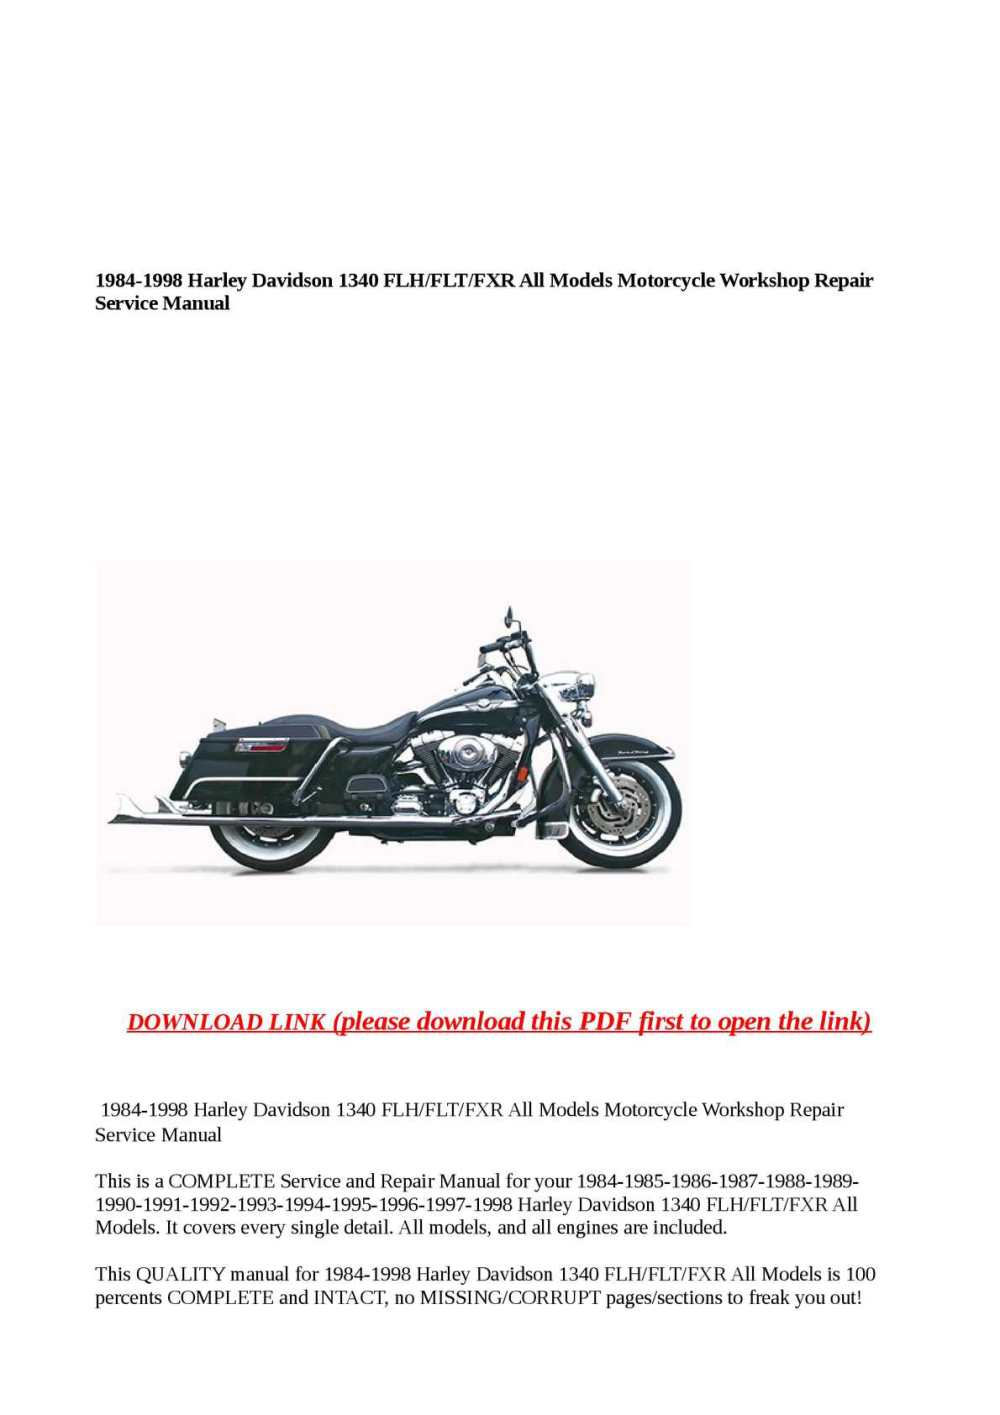 medium resolution of 1984 1998 harley davidson 1340 flh flt fxr all models motorcycle